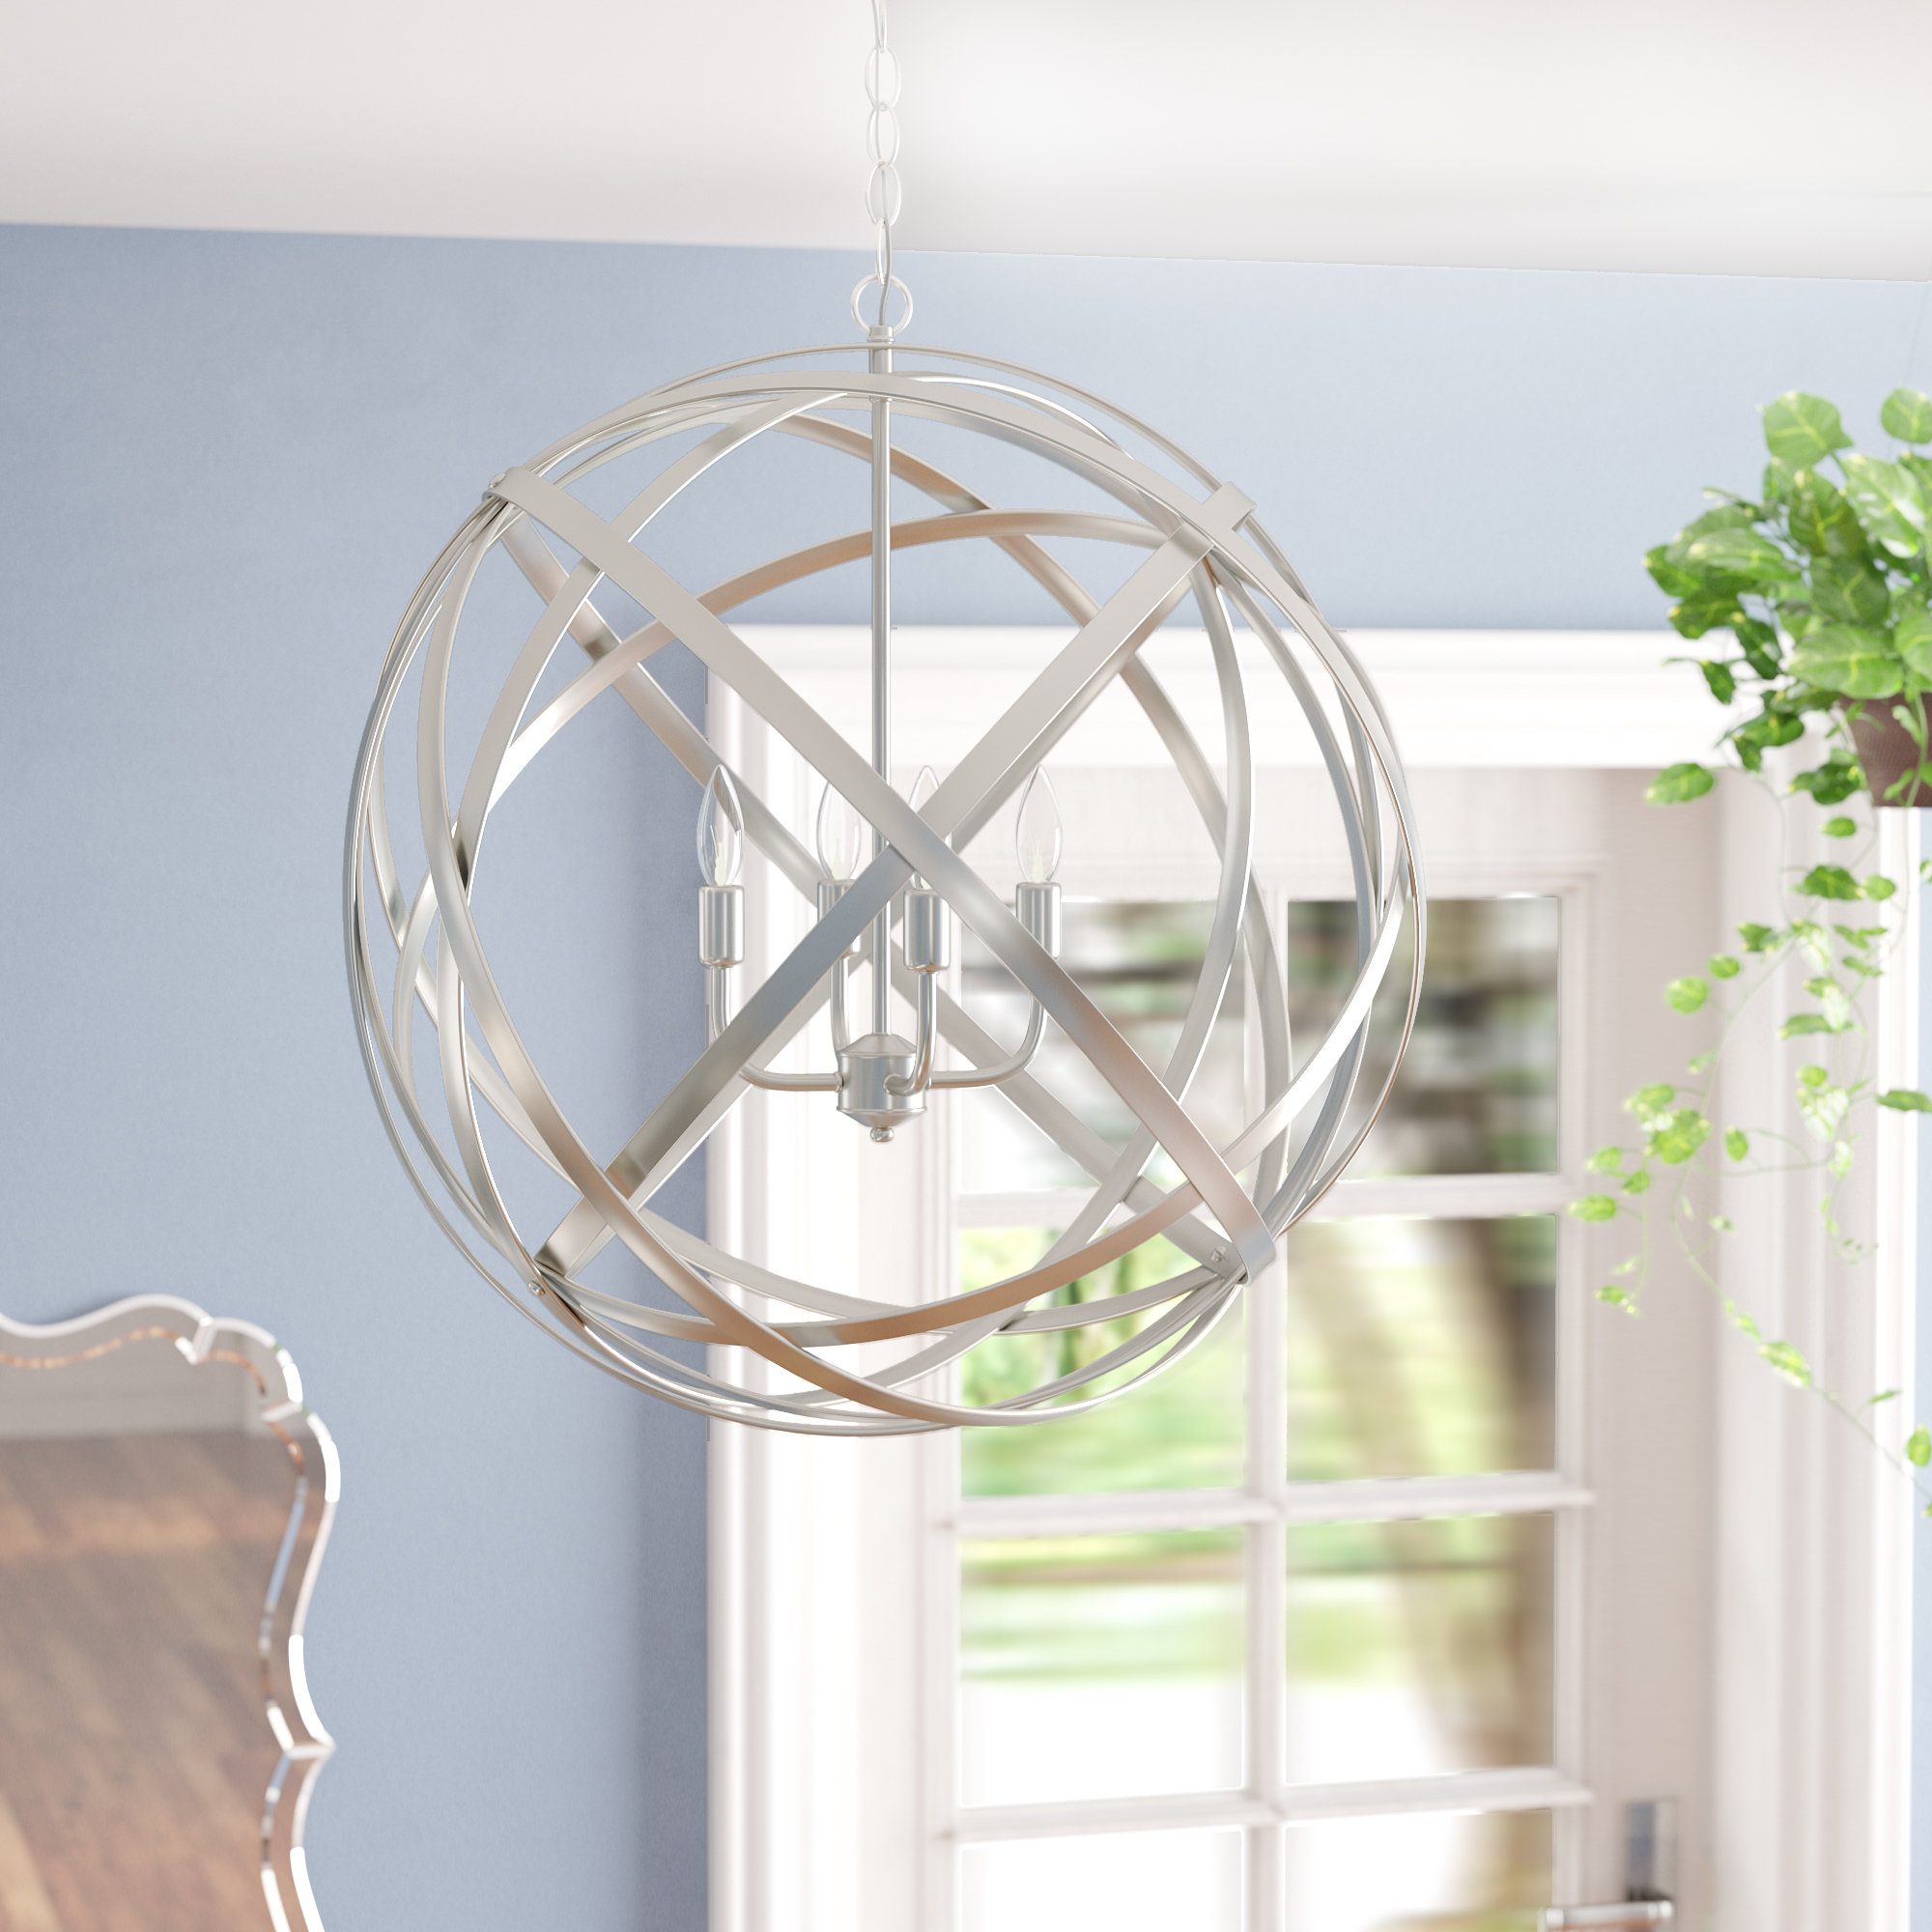 2019 Darby Home Co Farrier 3 Light Lantern Drum Pendant & Reviews Pertaining To Farrier 3 Light Lantern Drum Pendants (View 1 of 20)